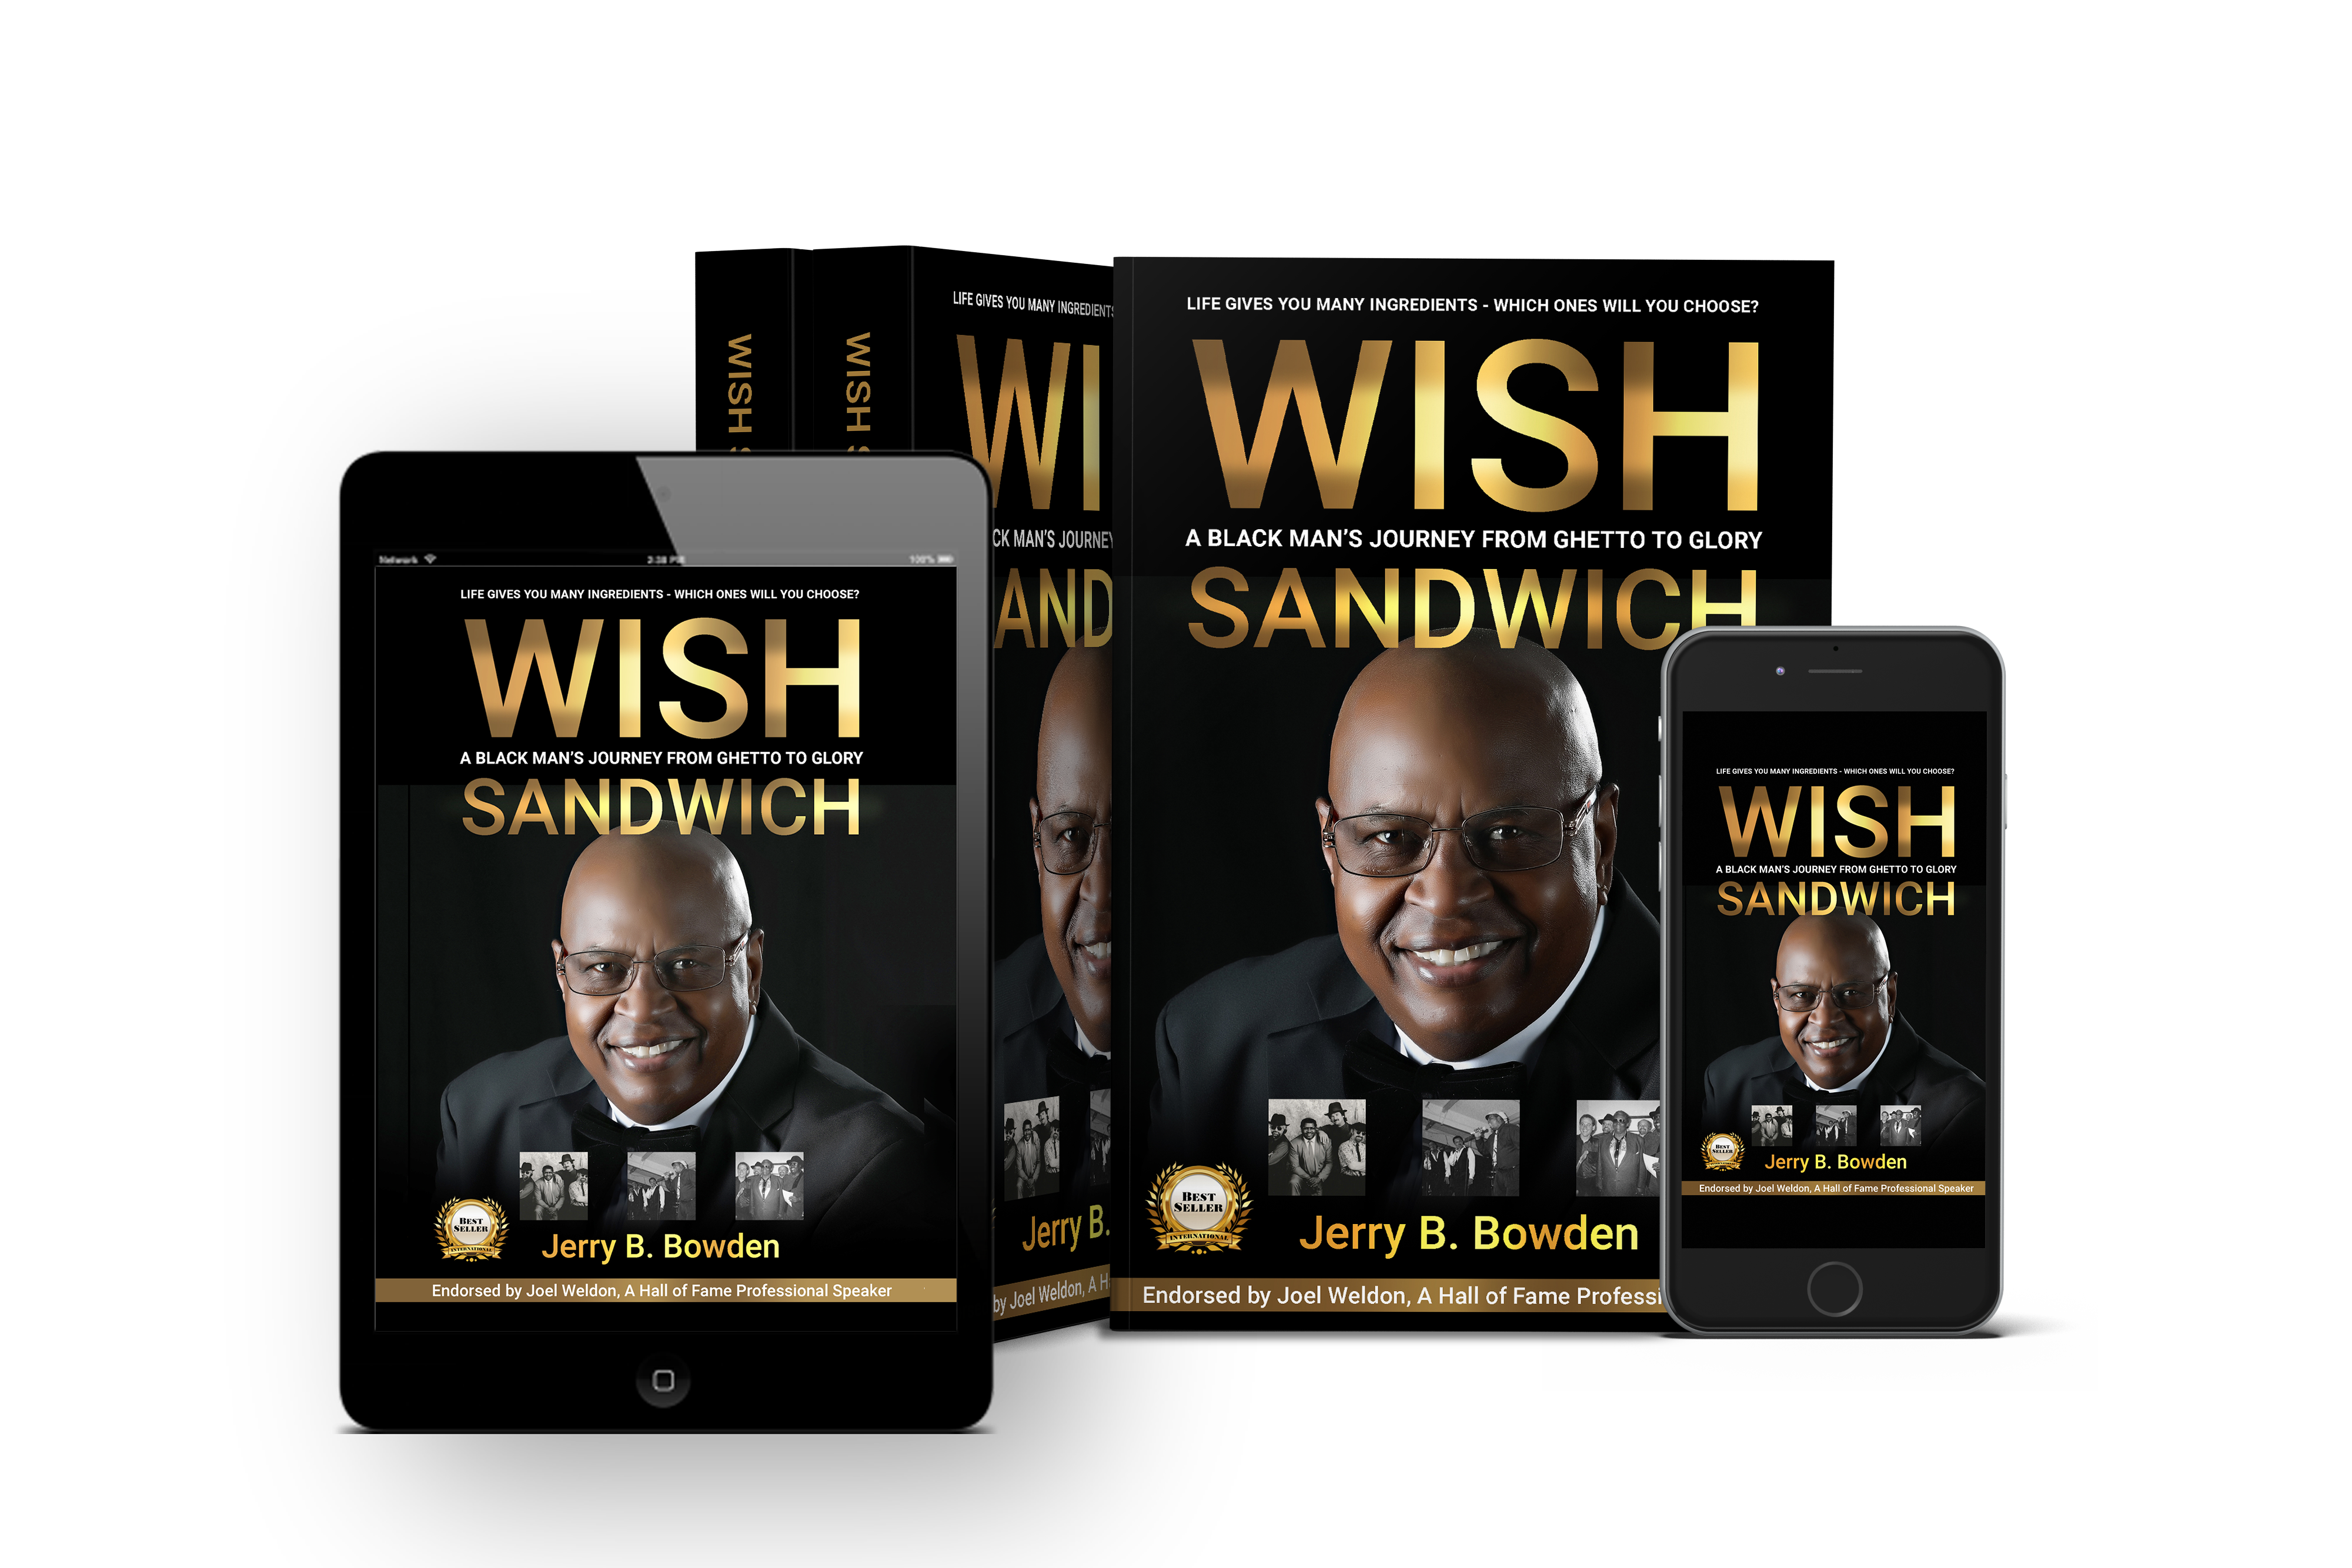 Wish Sandwich book about a black man's journey from ghetto to glory, by Jerry B. Bowden available in paperback or ebook